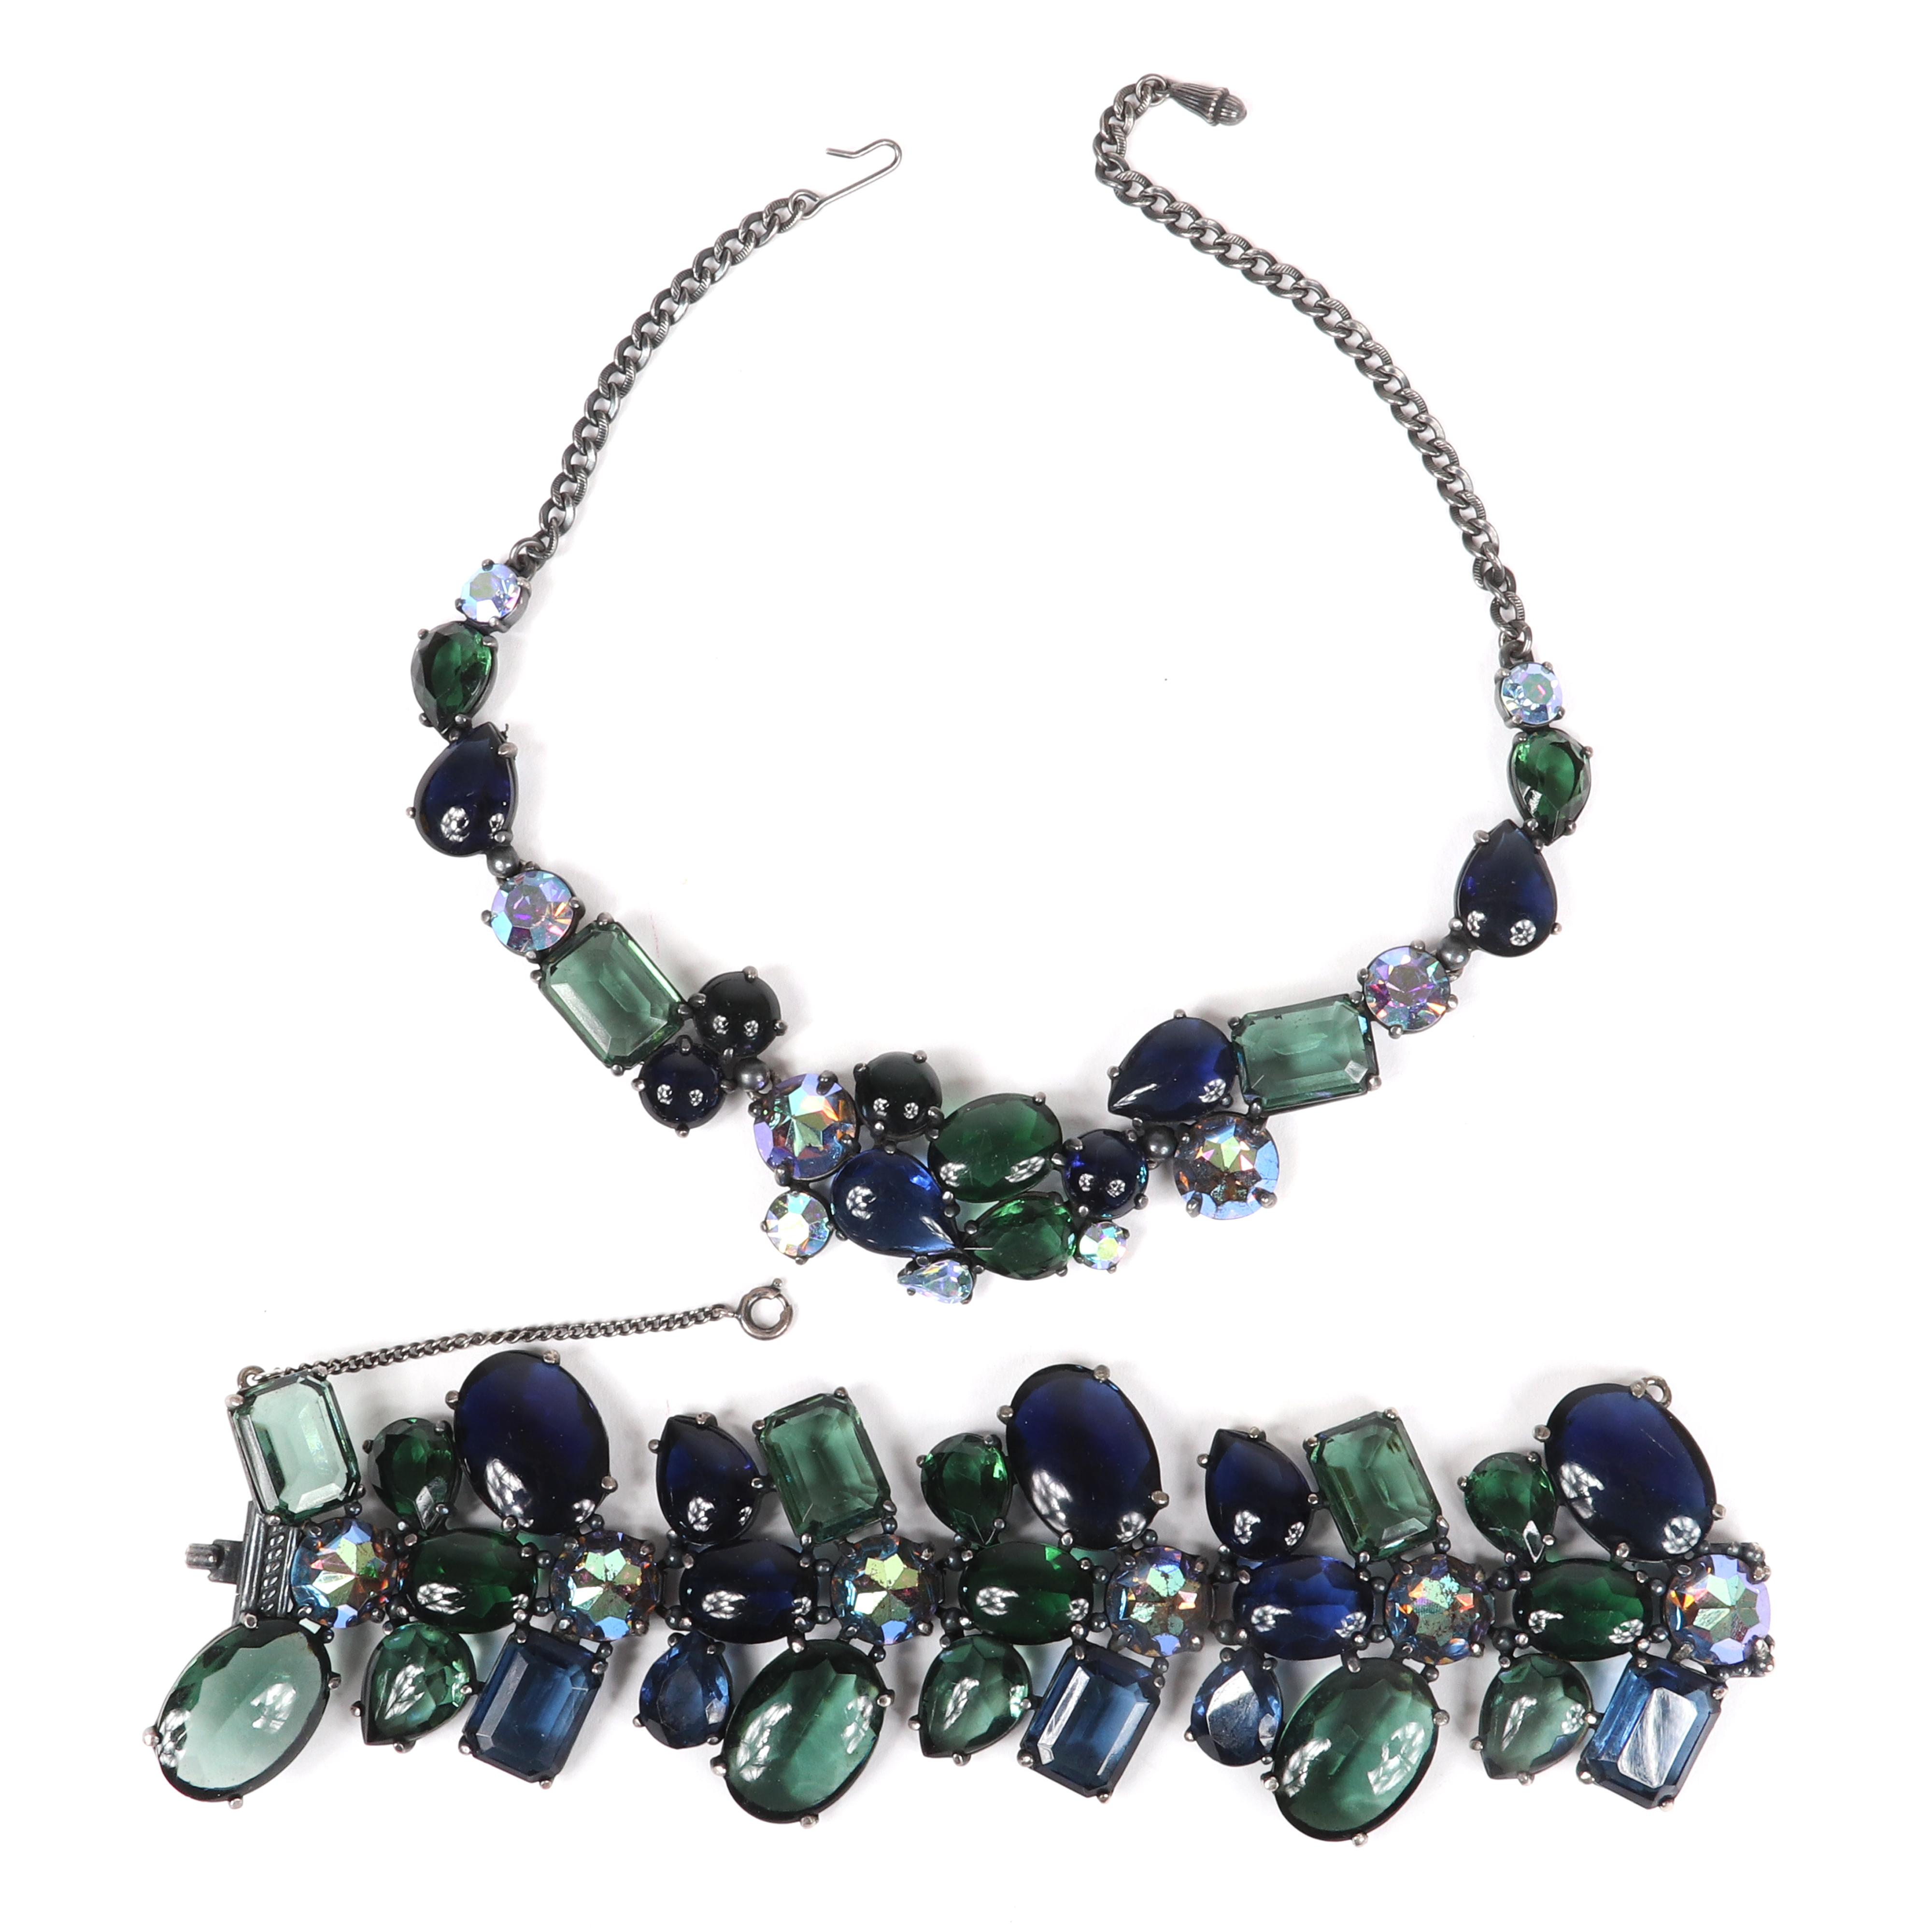 "Gorgeous Schiaparelli 2pc. deep cobalt blue / moss green demi parure; necklace and wide bracelet with glass cabochons and ab iridescent faceted jewels. 17""Long (necklace)"